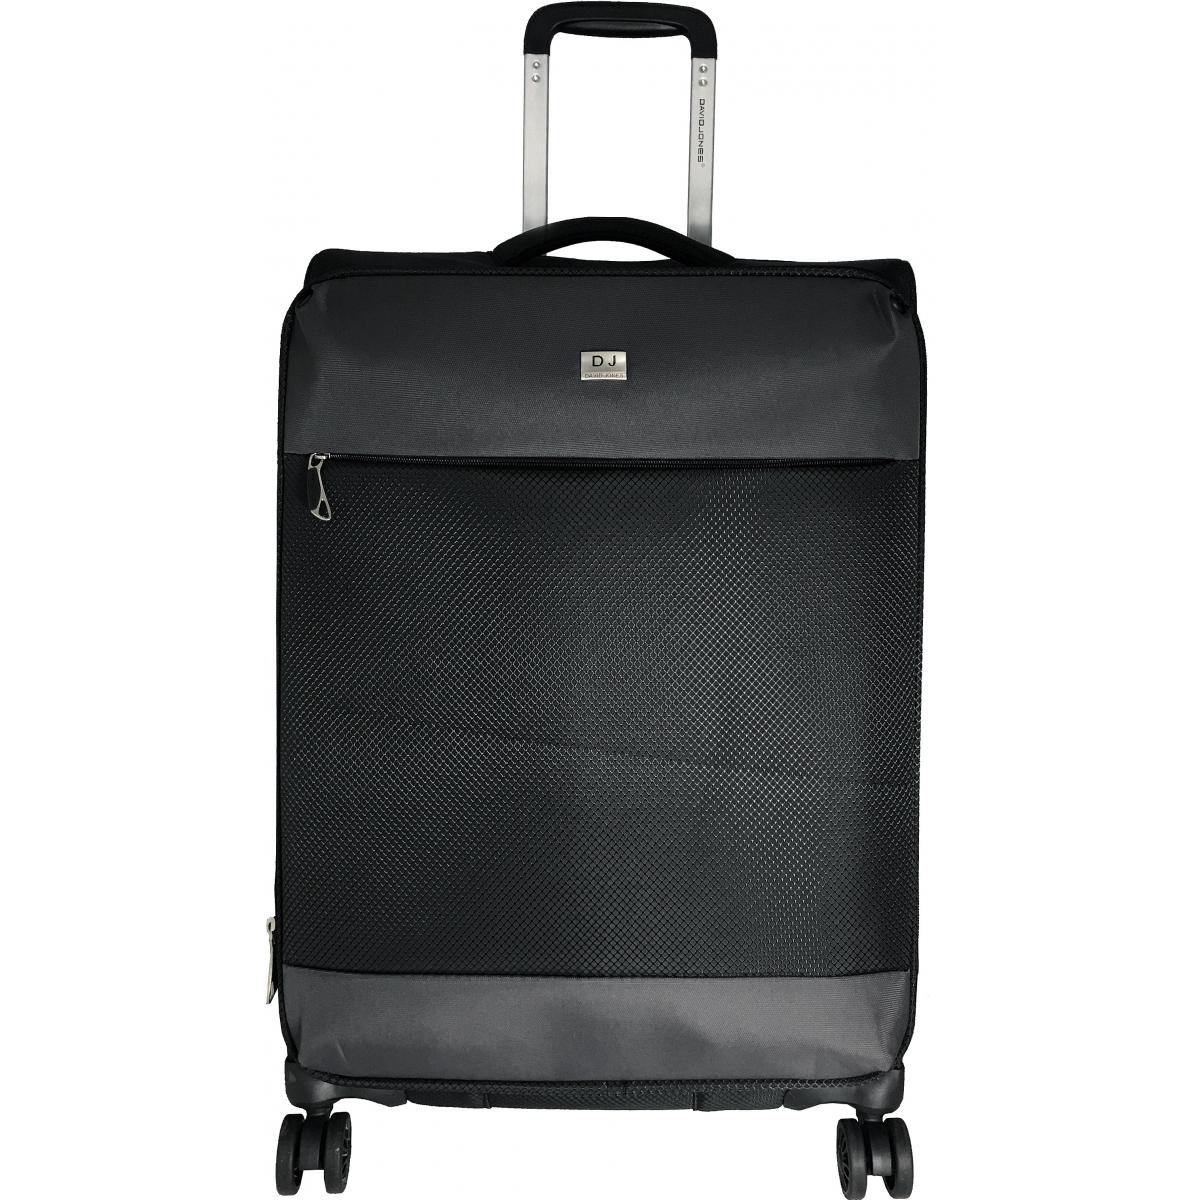 valise souple tsa david jones 63 cm taille m noir ba50441m couleur principale noir. Black Bedroom Furniture Sets. Home Design Ideas